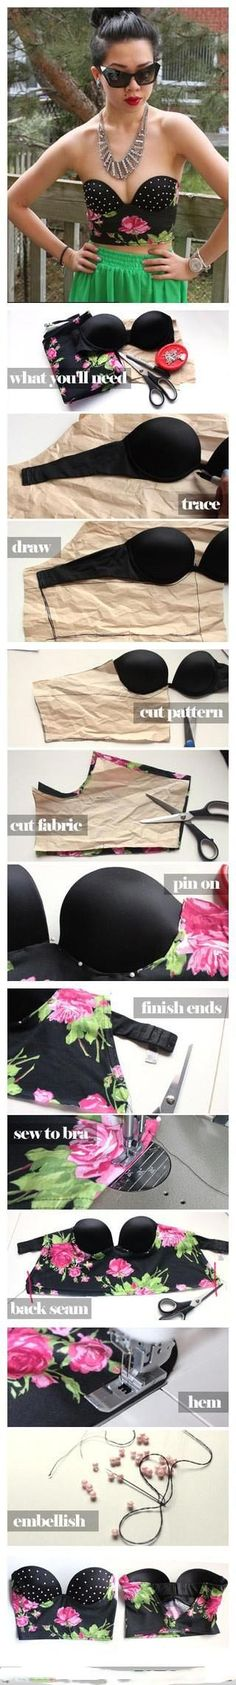 17 Interesting DIY Fashion Ideas- I would need to add more fabric on top of bra but sweet!!  could come in handy for Halloween ideas!corse